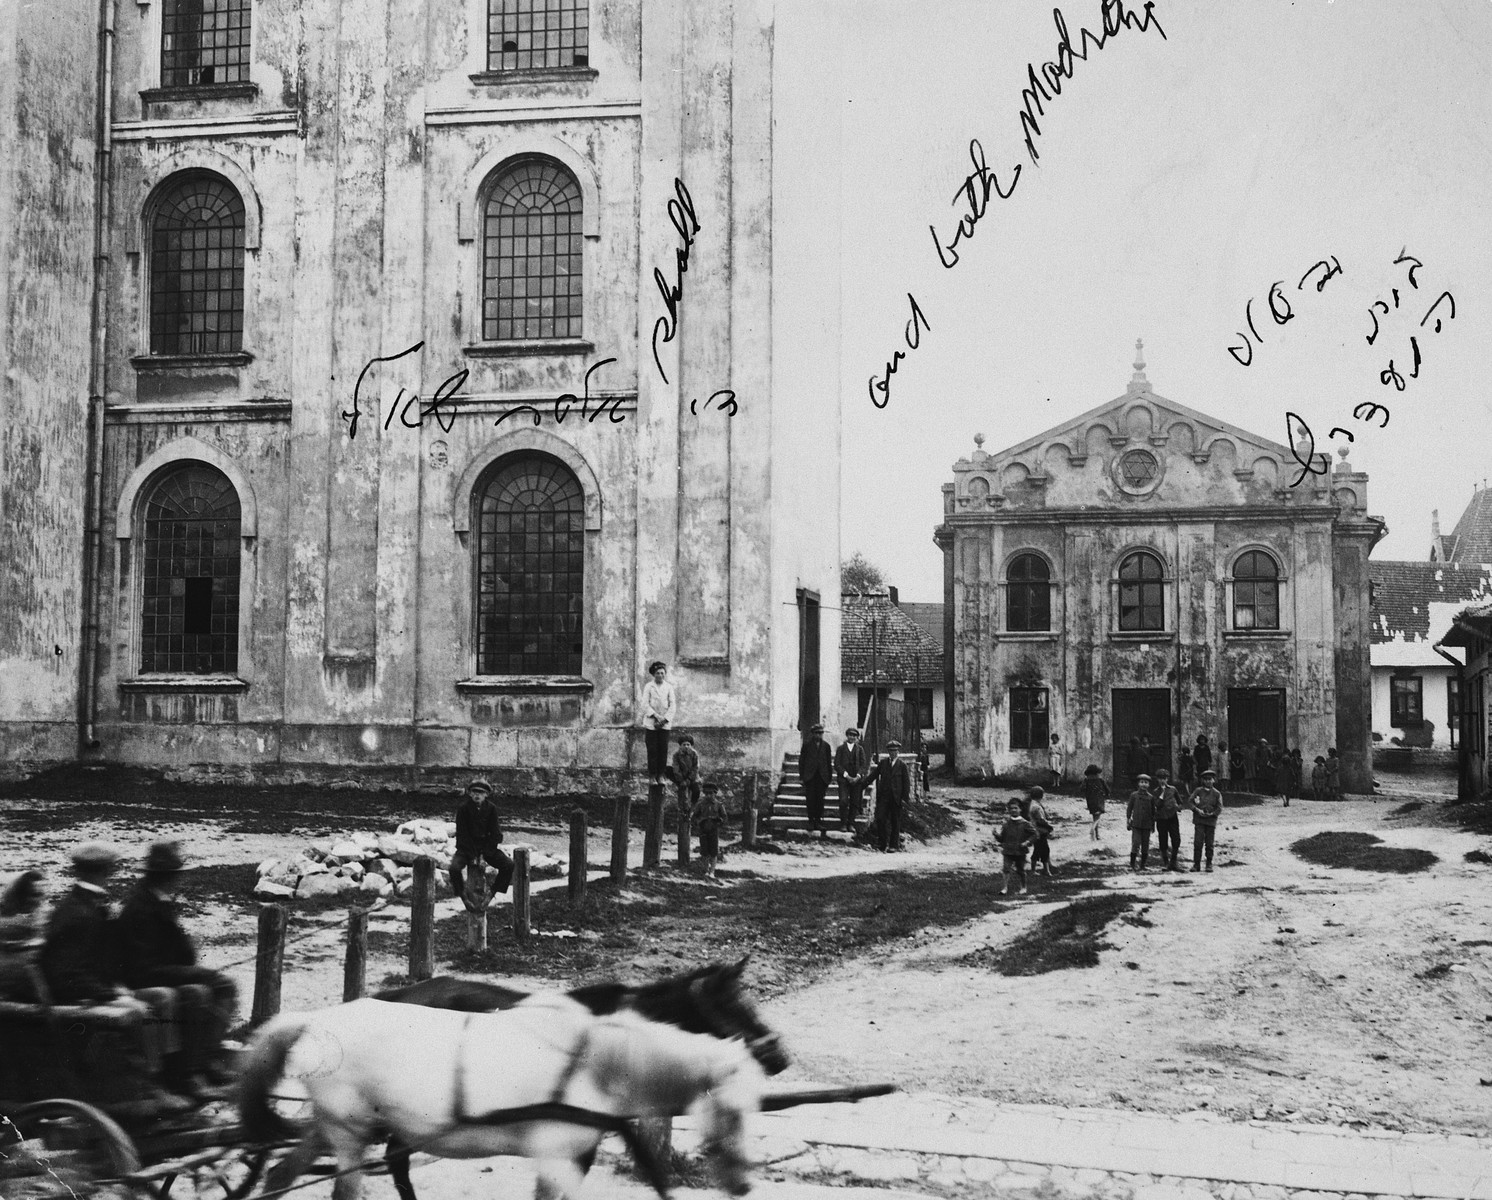 Passengers in a horse-drawn carriage ride through the public square of Drohobycz, past the large synagogue.  On the left is the large synagogue.  On the right is the smaller house of prayer, (Bet Midrash).